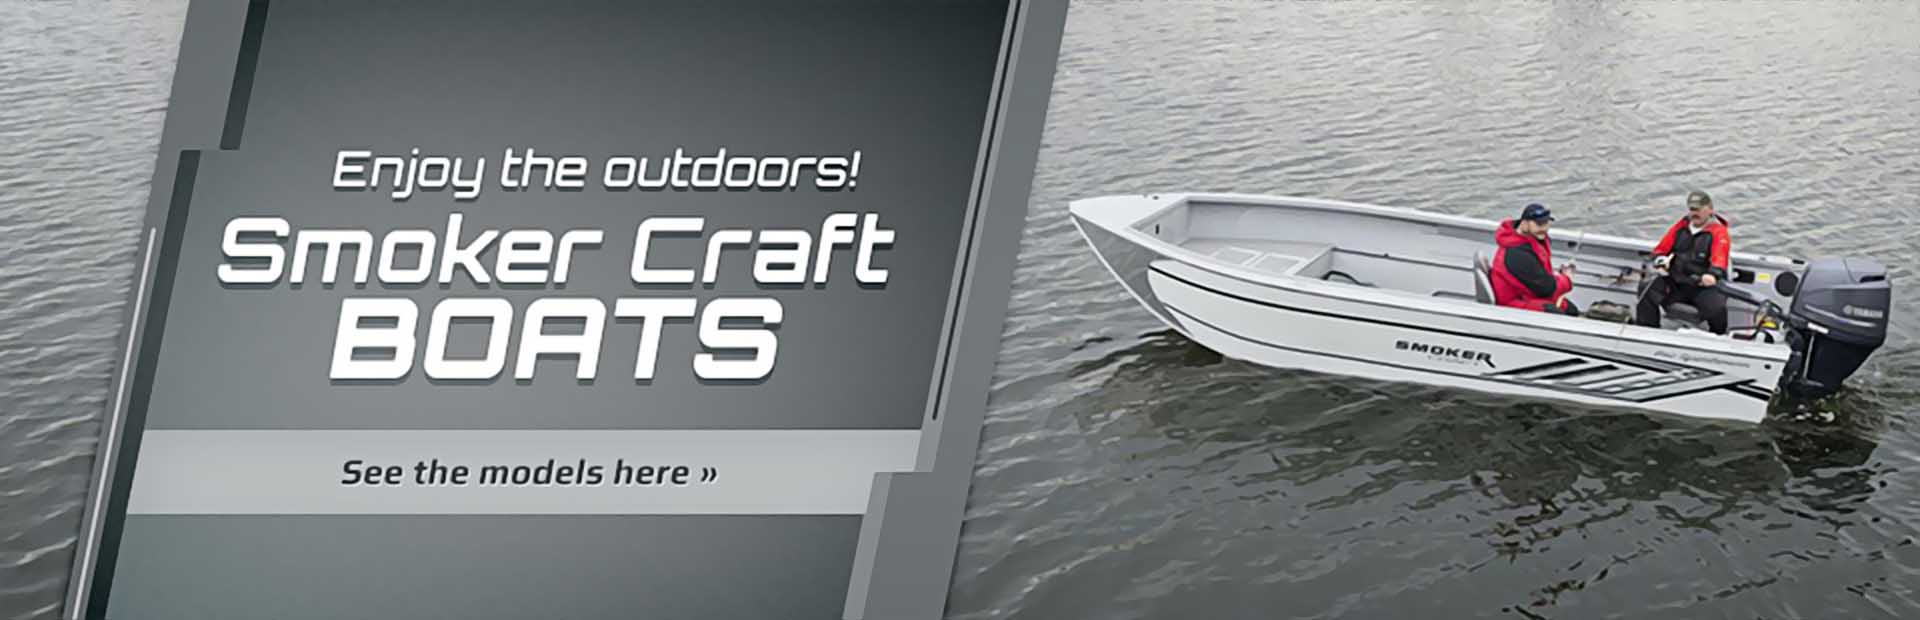 Smoker Craft Boats: Click here to view the models.